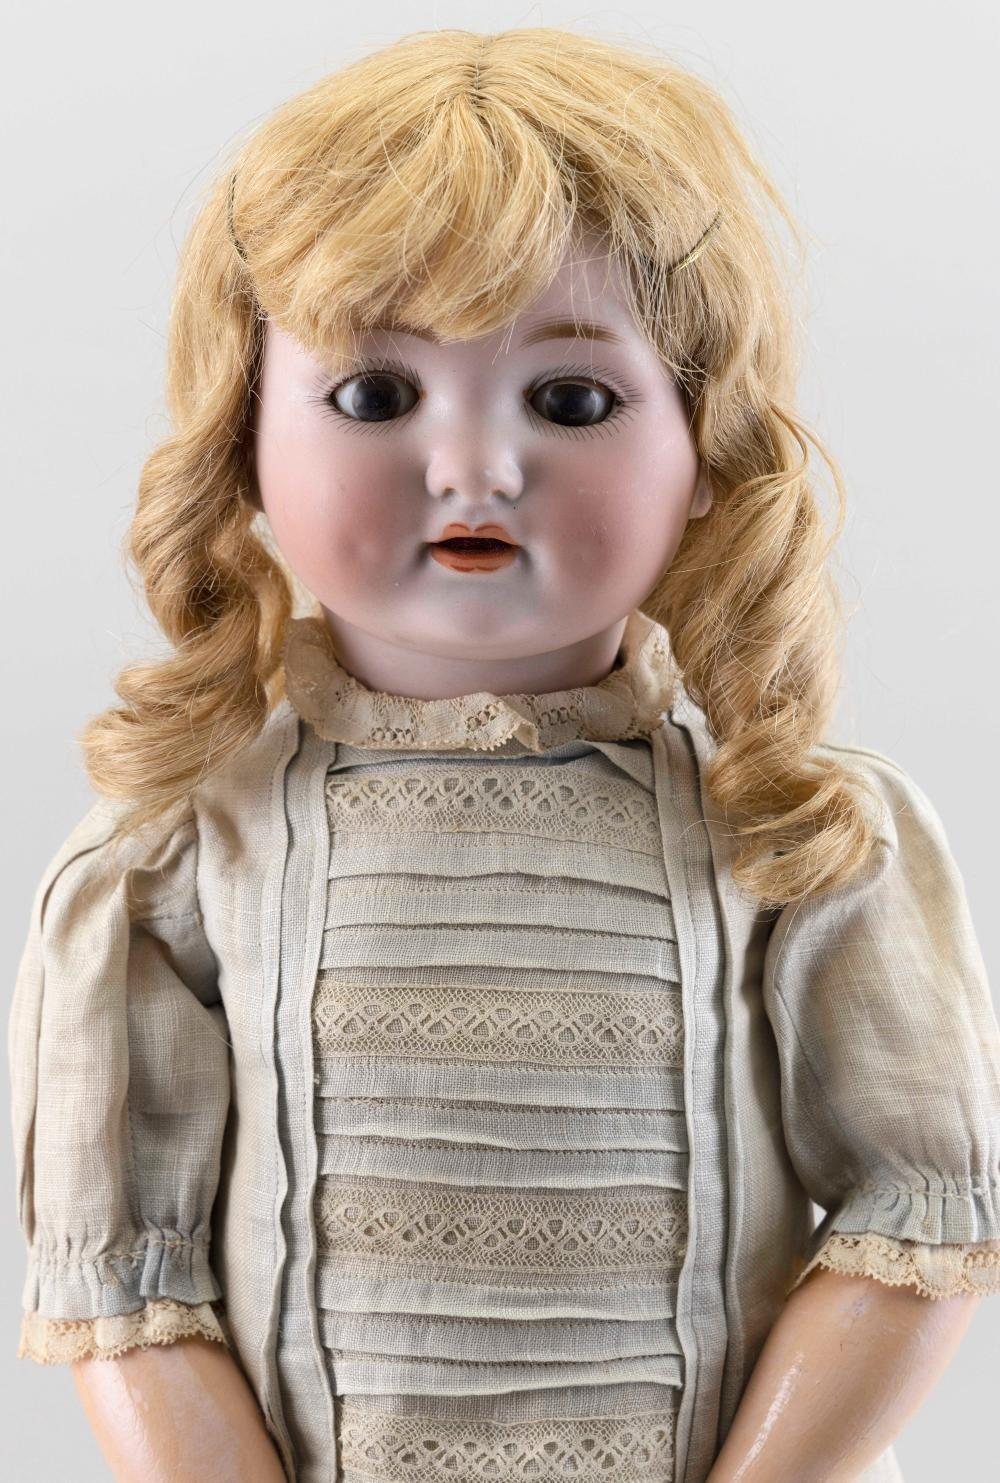 ARMAND MARSEILLE 985 BISQUE-HEAD DOLL 1910 Height 23